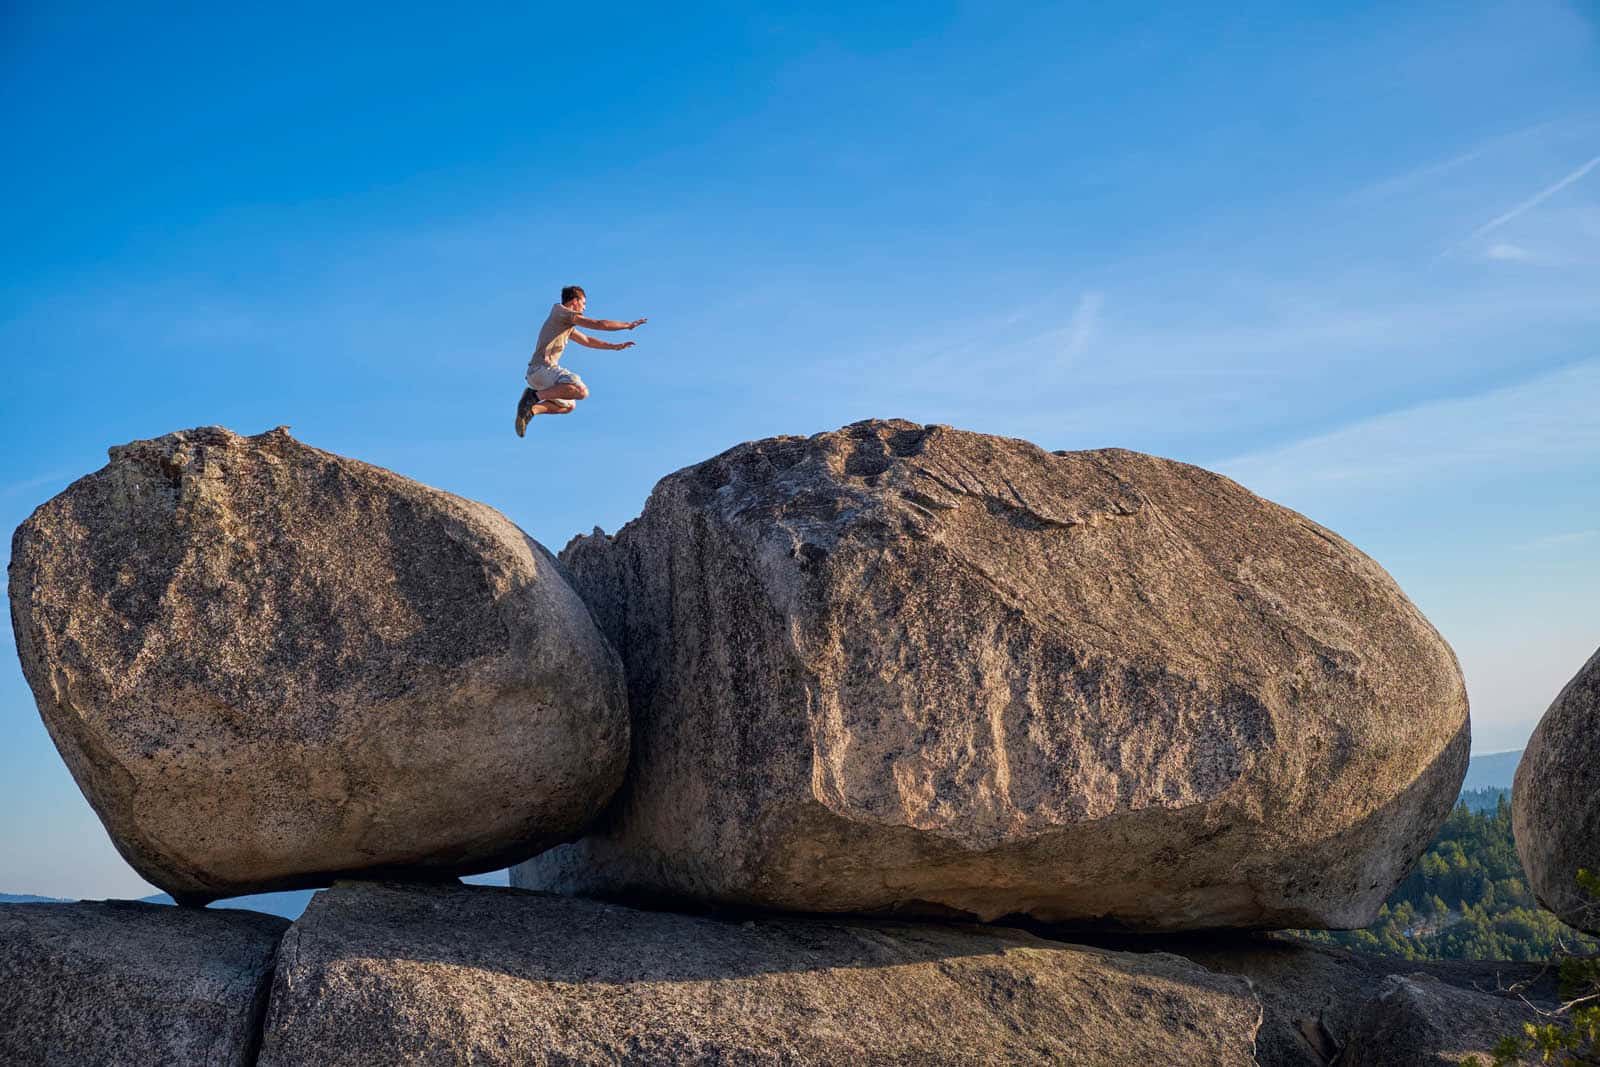 Teenage boy in a remote location in Northern California jumping from one large boulder to another one.